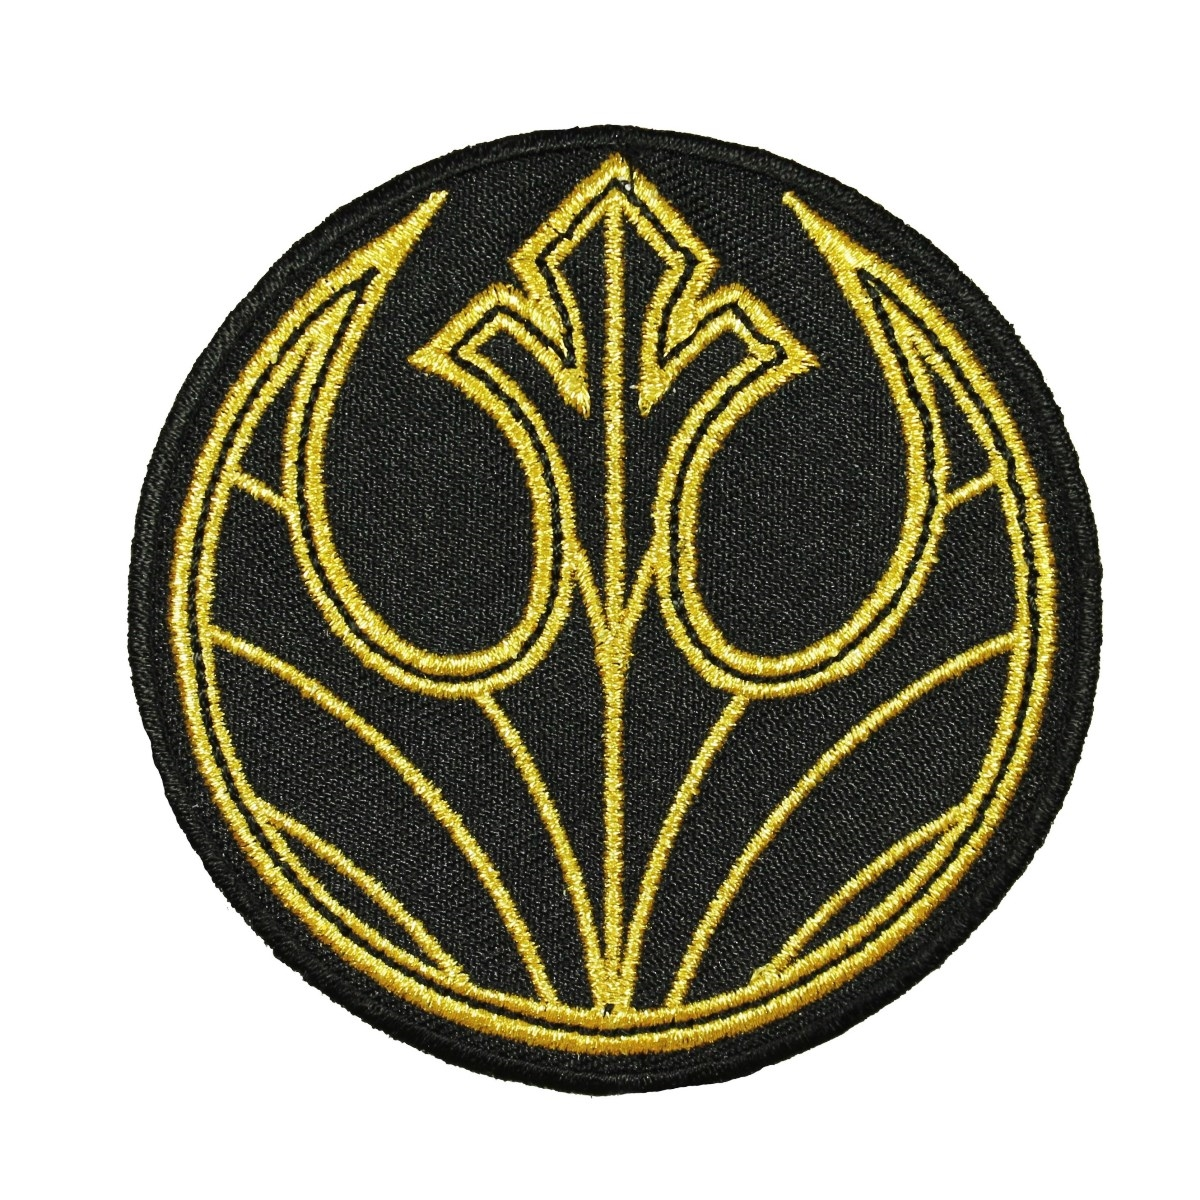 TLJ Rebel Badge Embroidered Iron-On Patch